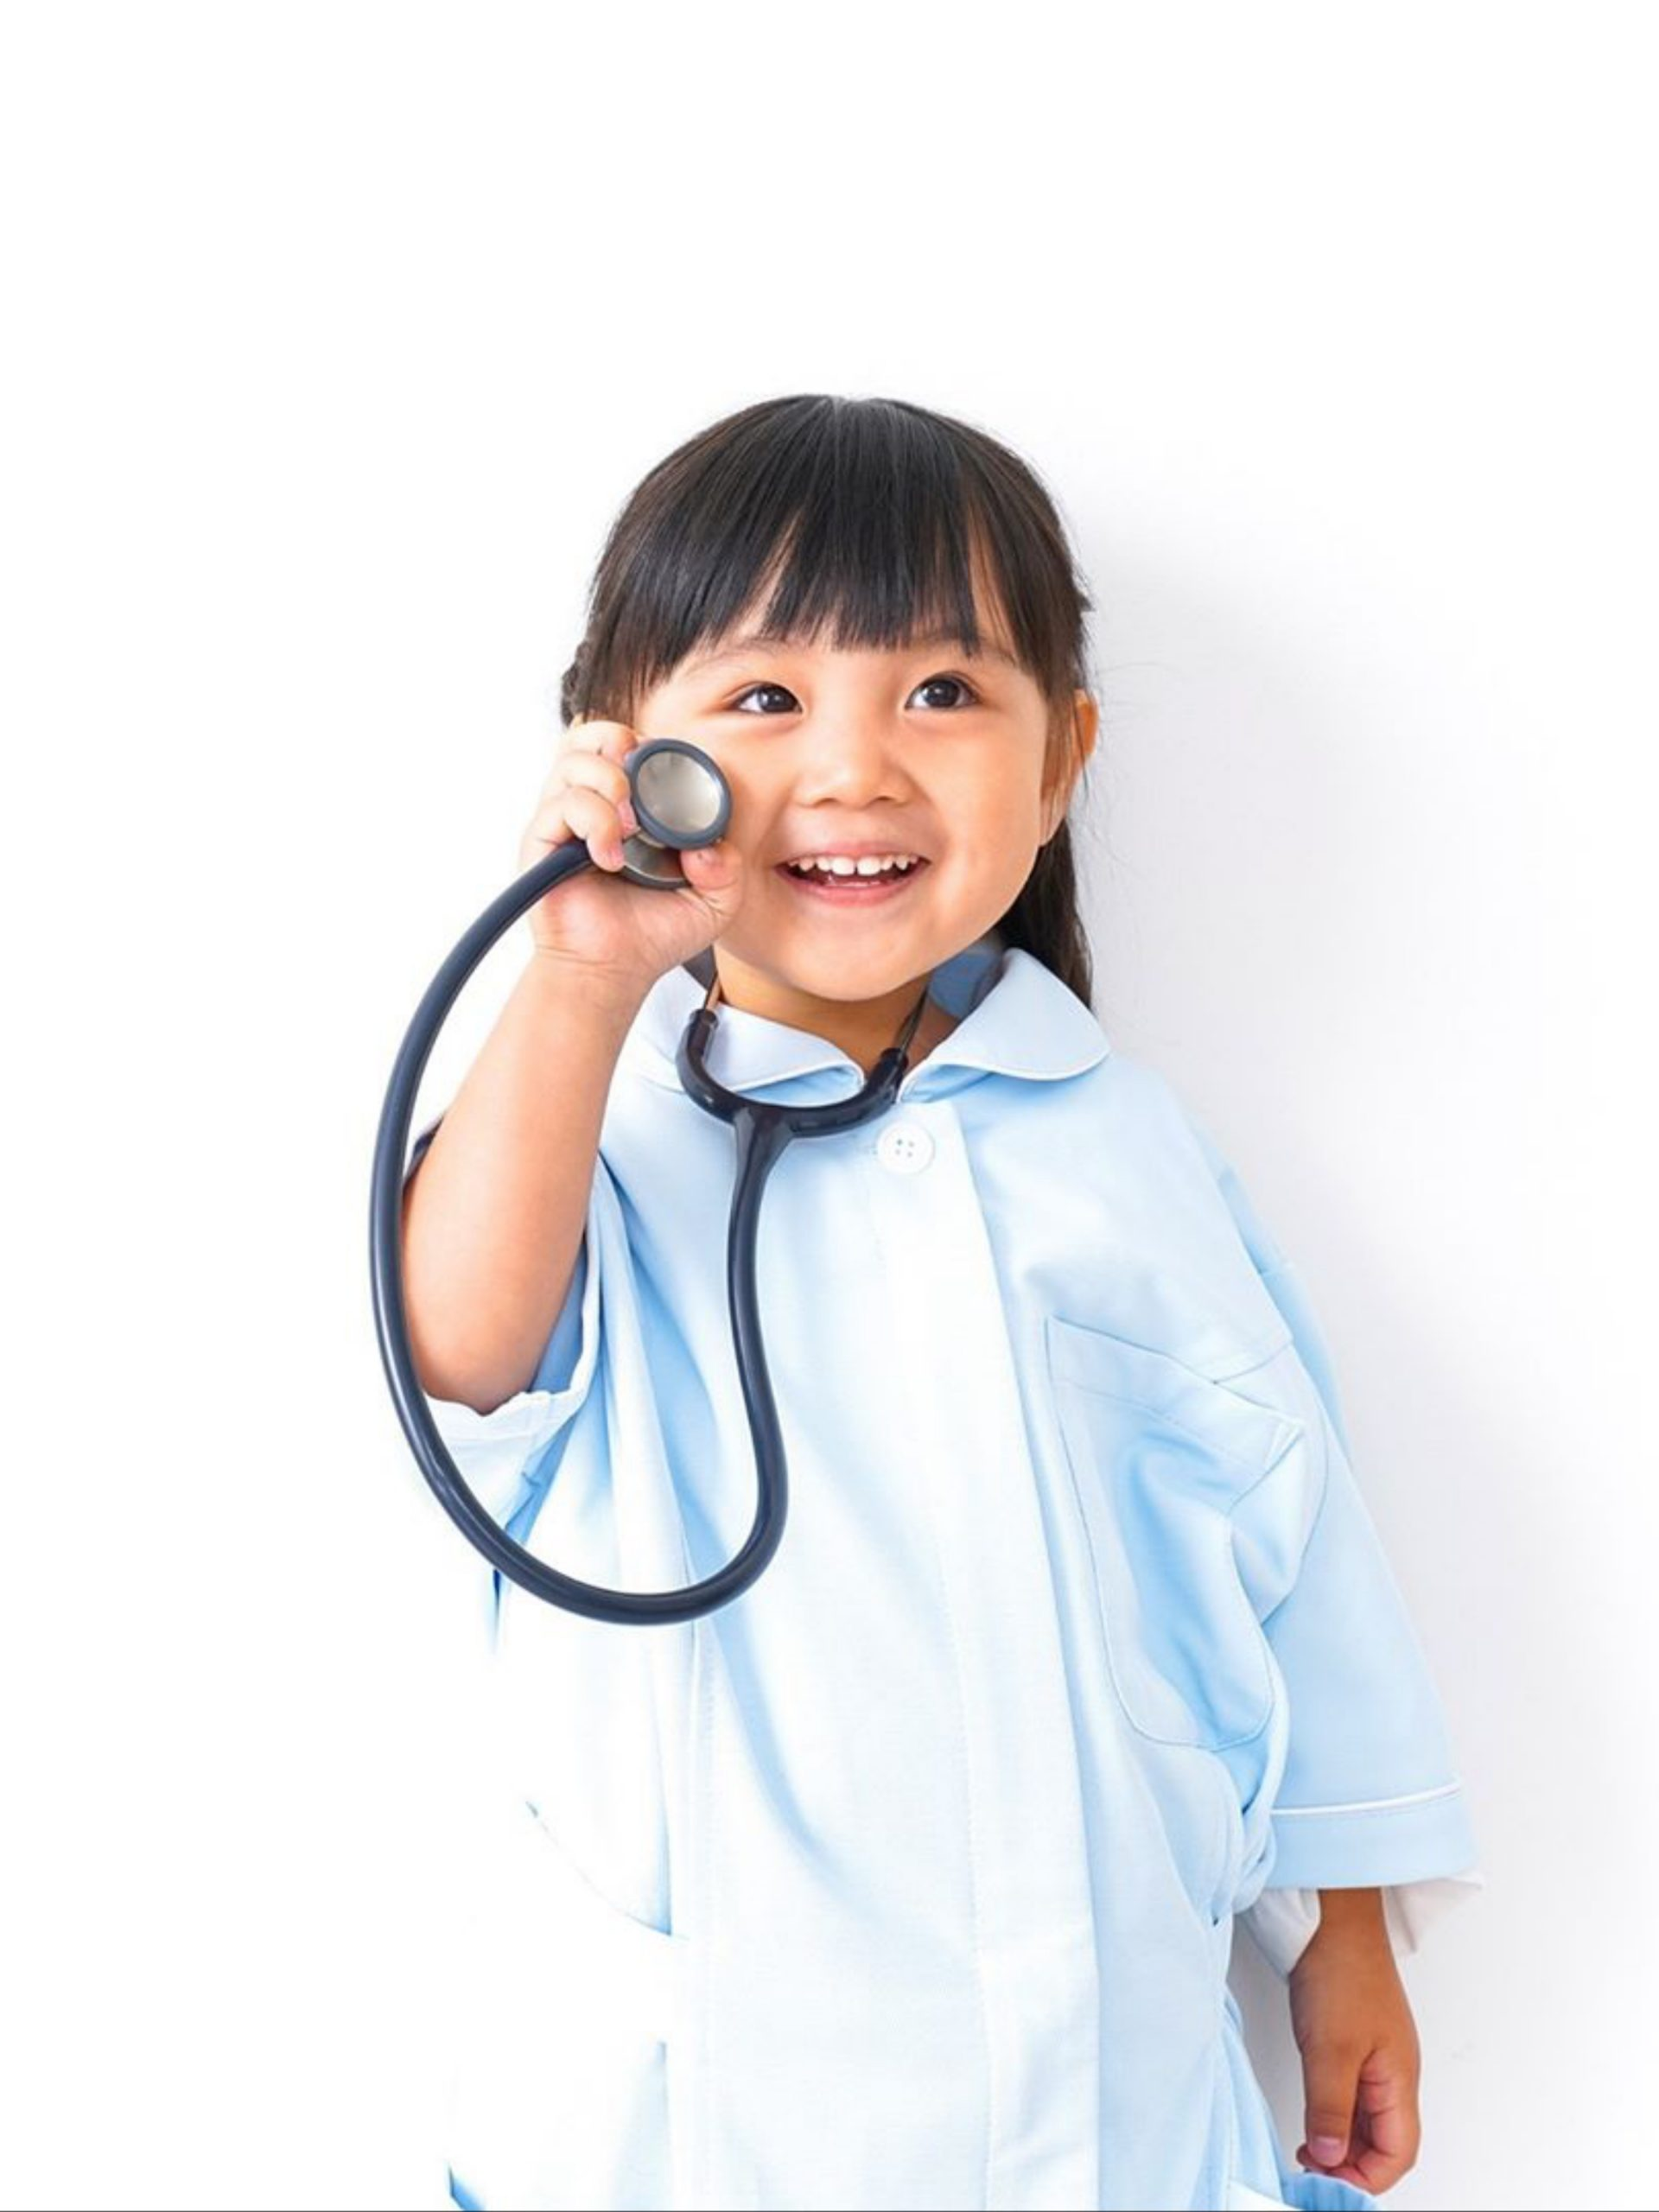 A kid in doctor costume